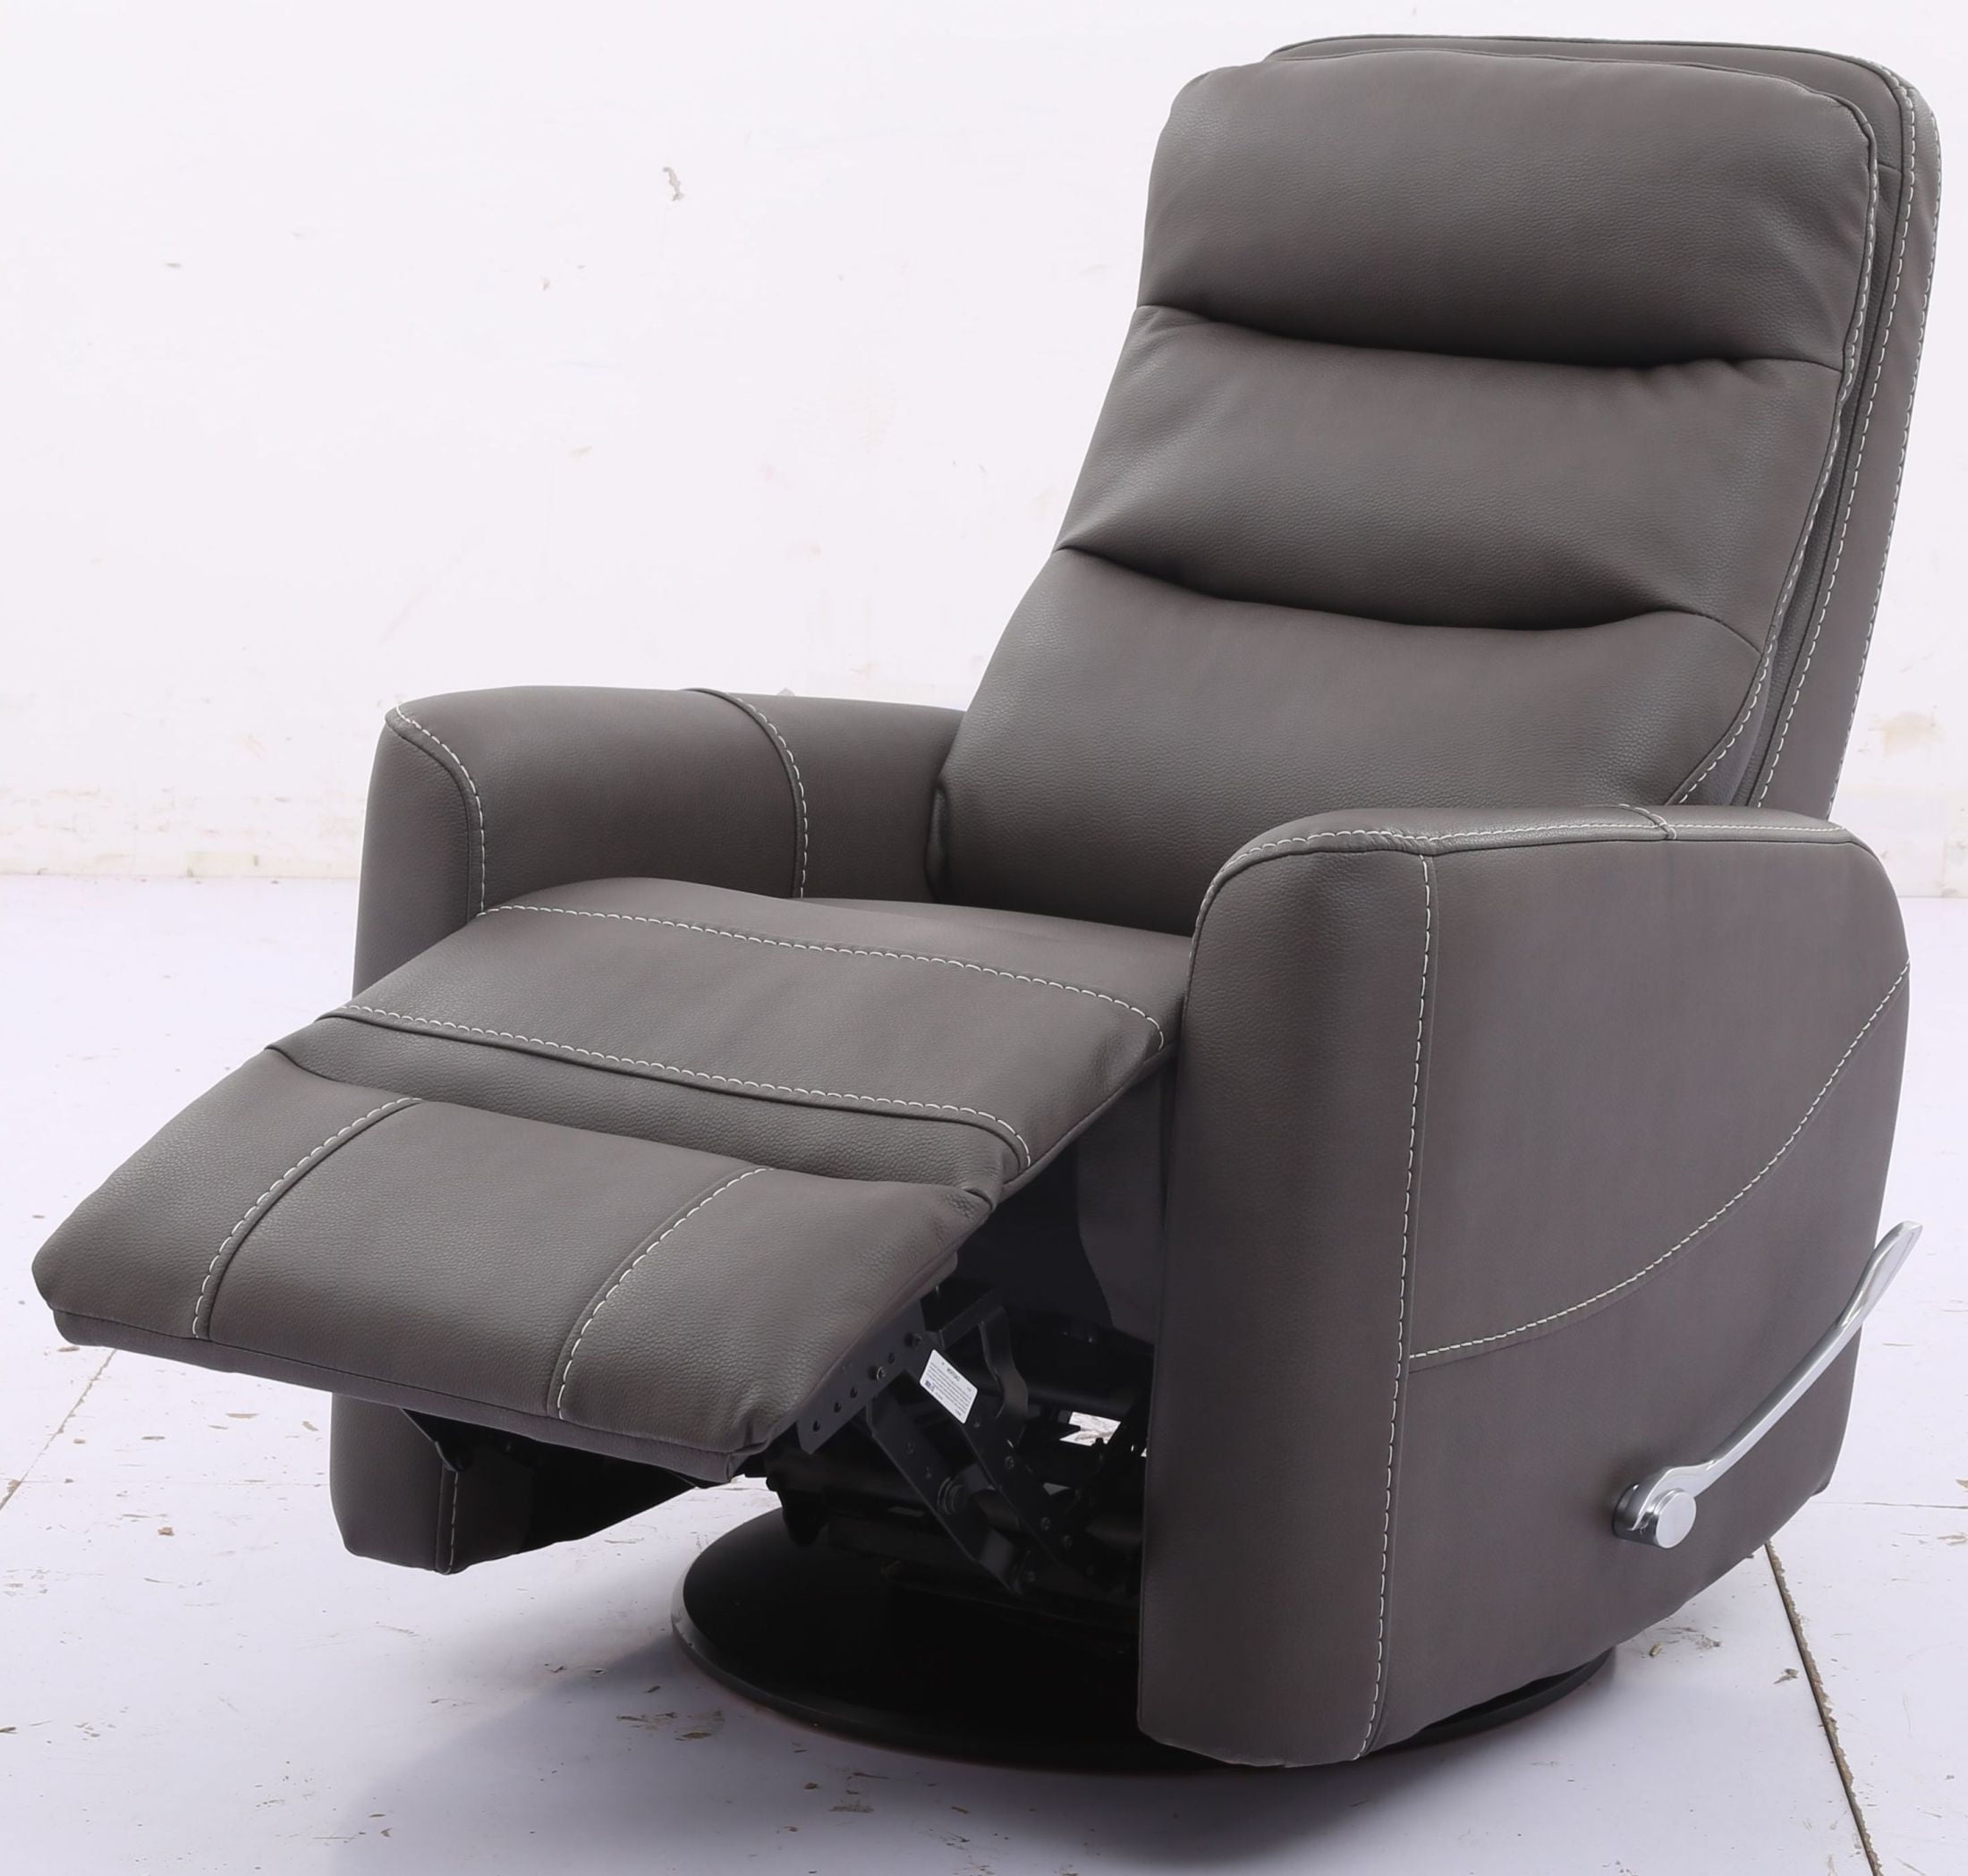 Hercules Haze Swivel Glider Recliner With Articulating Headrest From Regarding Well Known Hercules Oyster Swivel Glider Recliners (View 15 of 20)